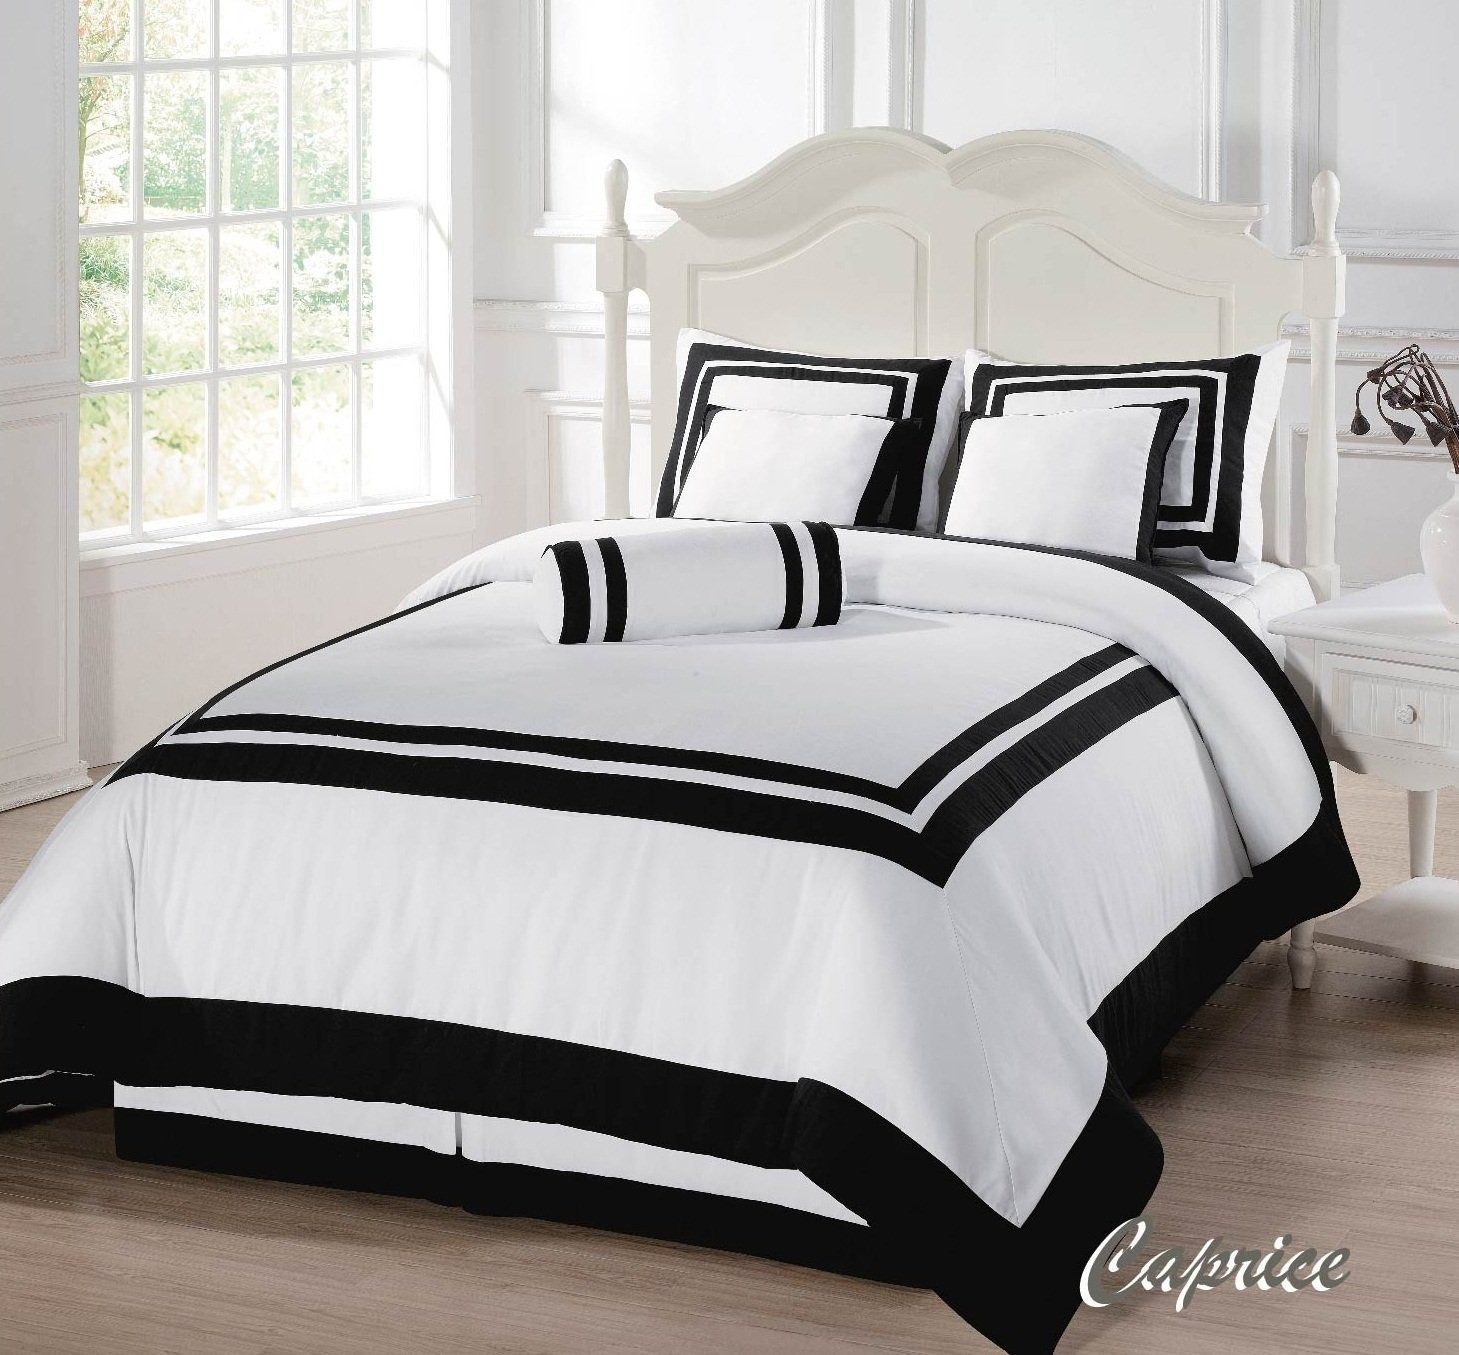 Best Amazon Com White With Black Square Hotel Duvet Cover 7 640 x 480